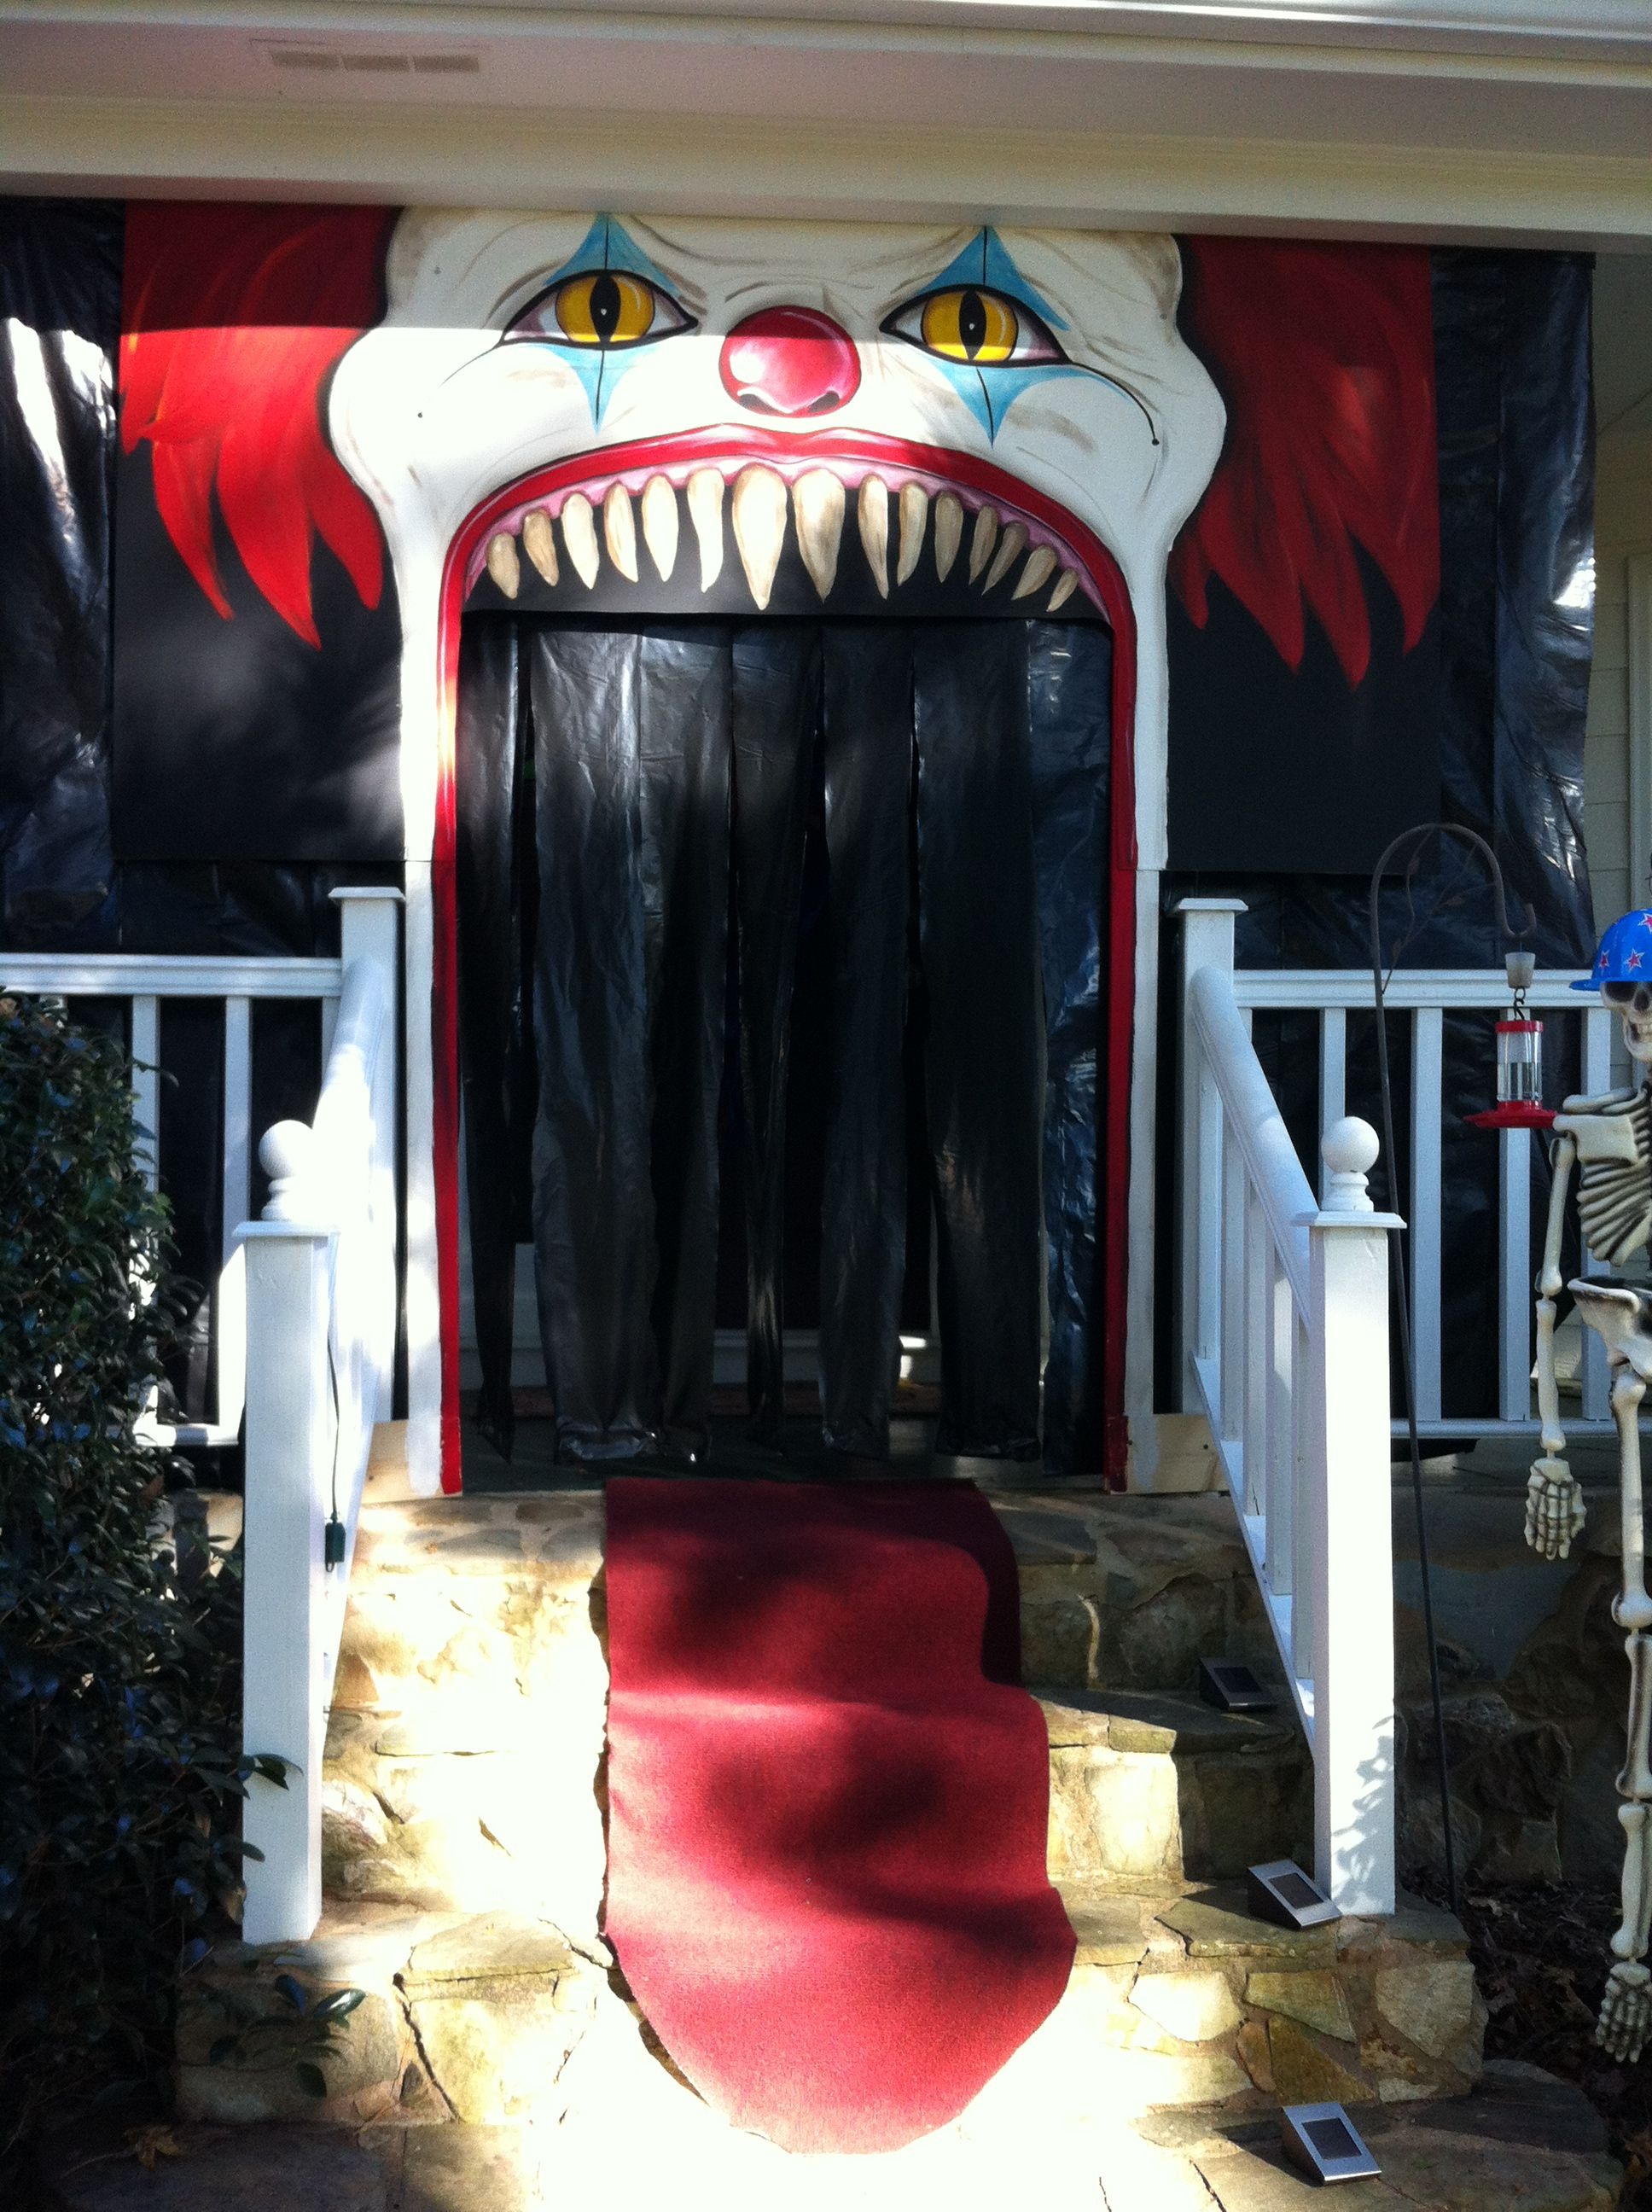 evil clown halloween. porch decor. / porche decorado con payaso